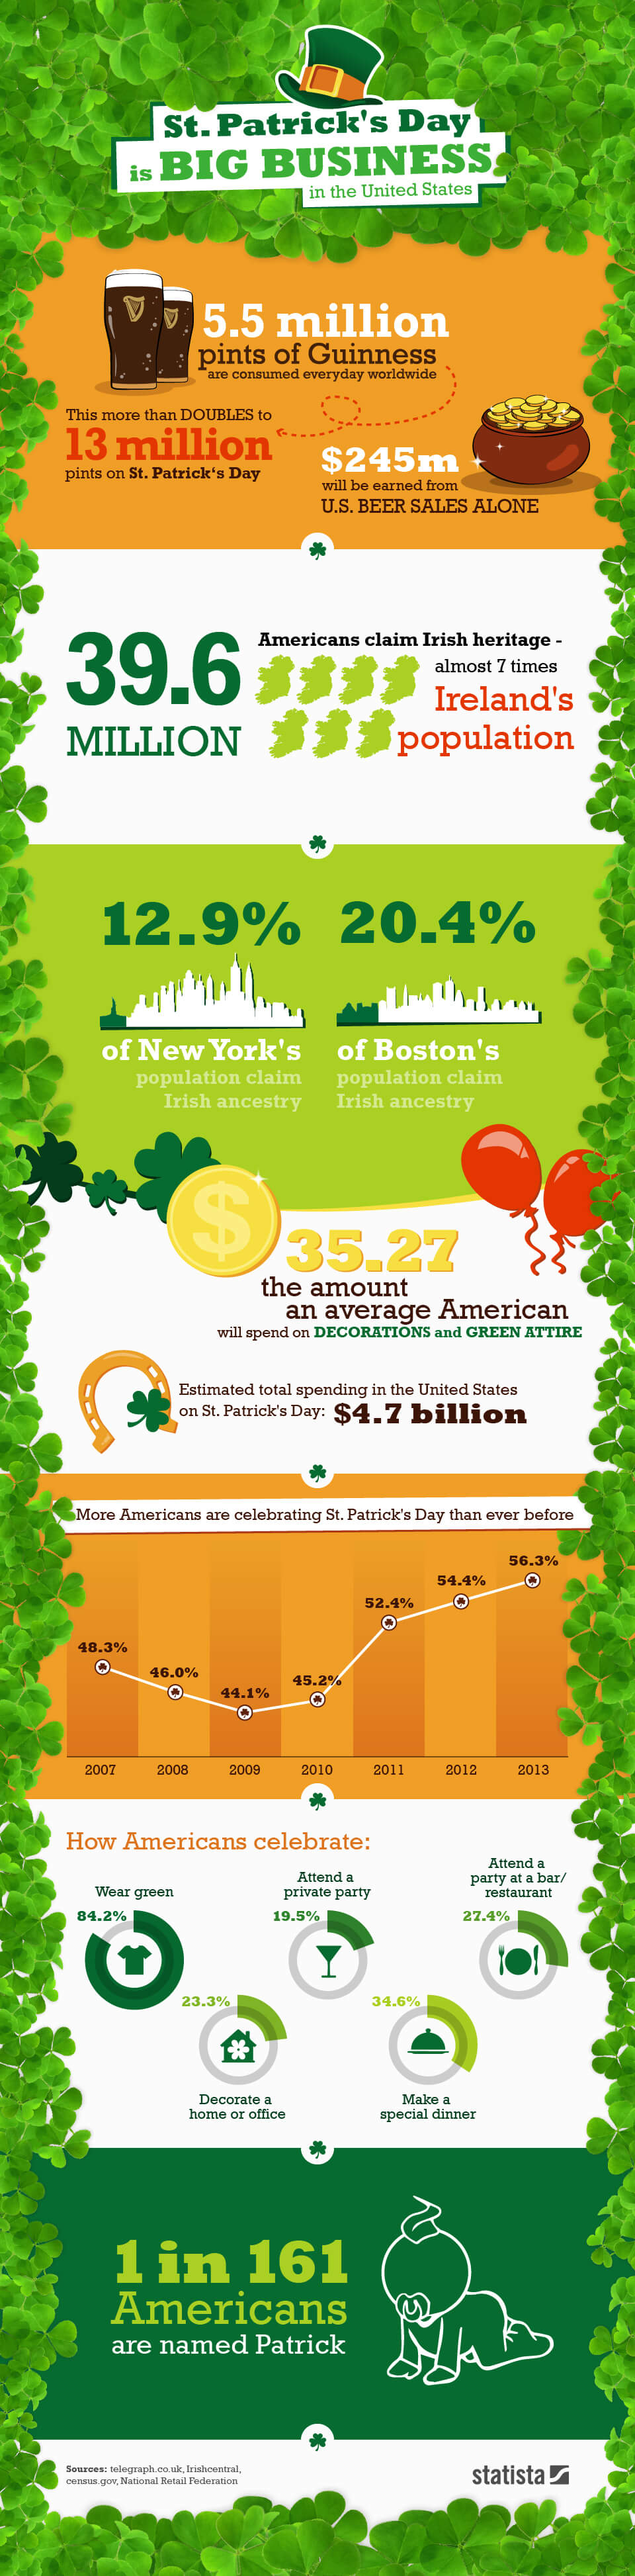 Infographic: St. Patrick's Day is Big Business in the United States | Statista